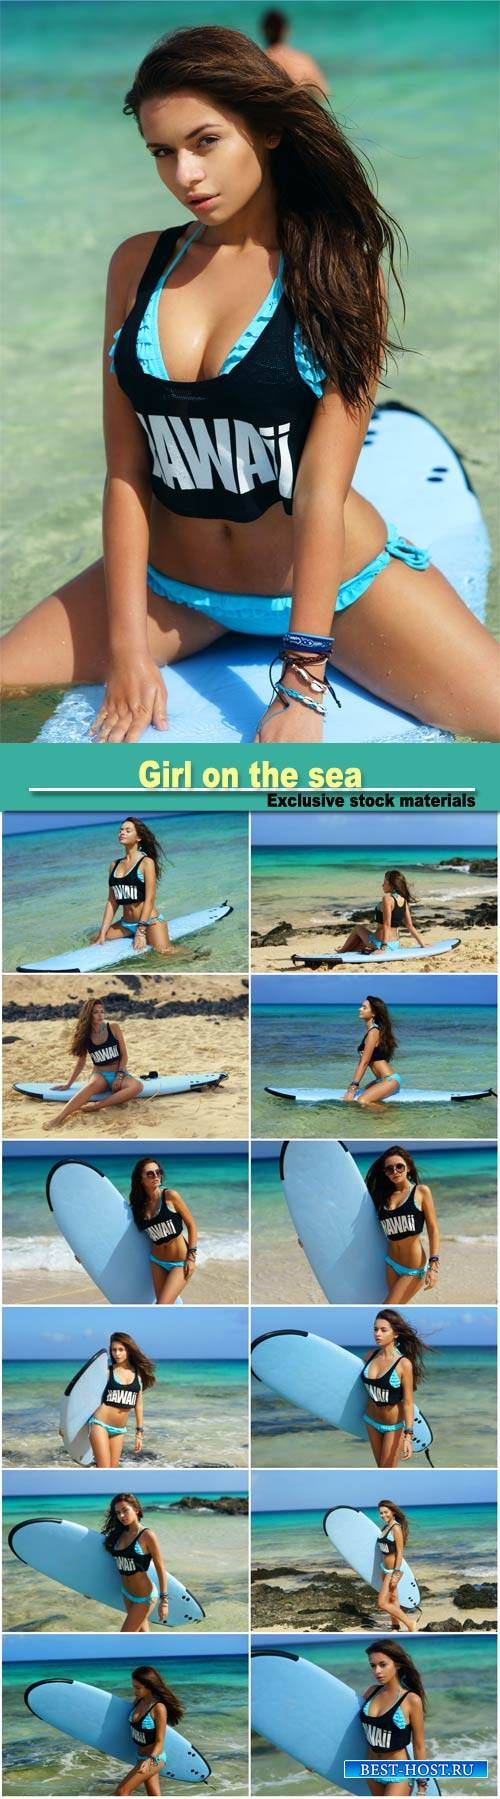 Girl on the sea, surfing